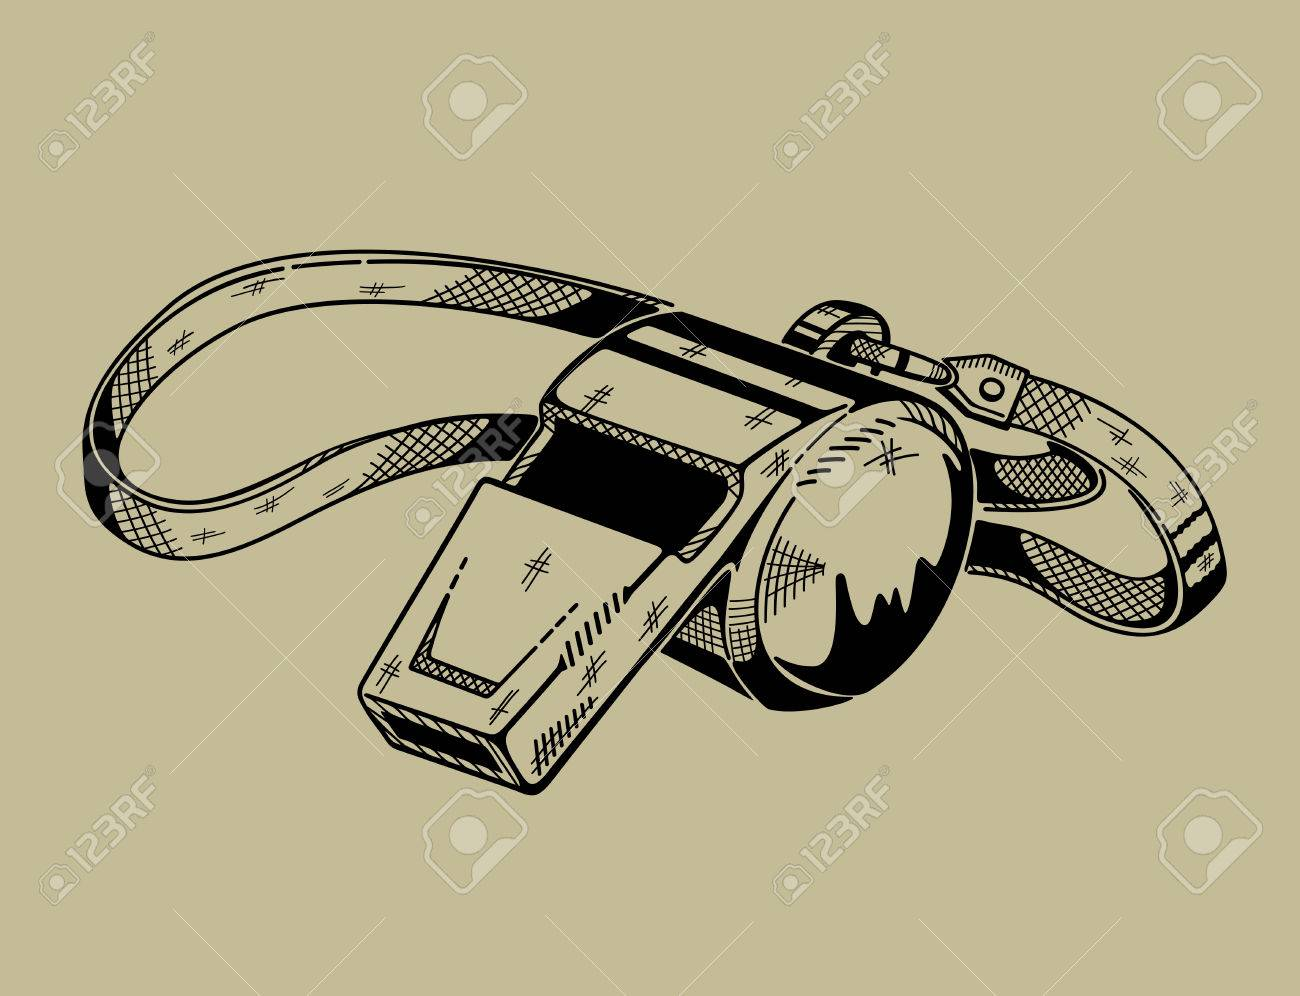 Line Drawing Vector Graphics : Monochrome illustration of whistle. vector graphics. royalty free